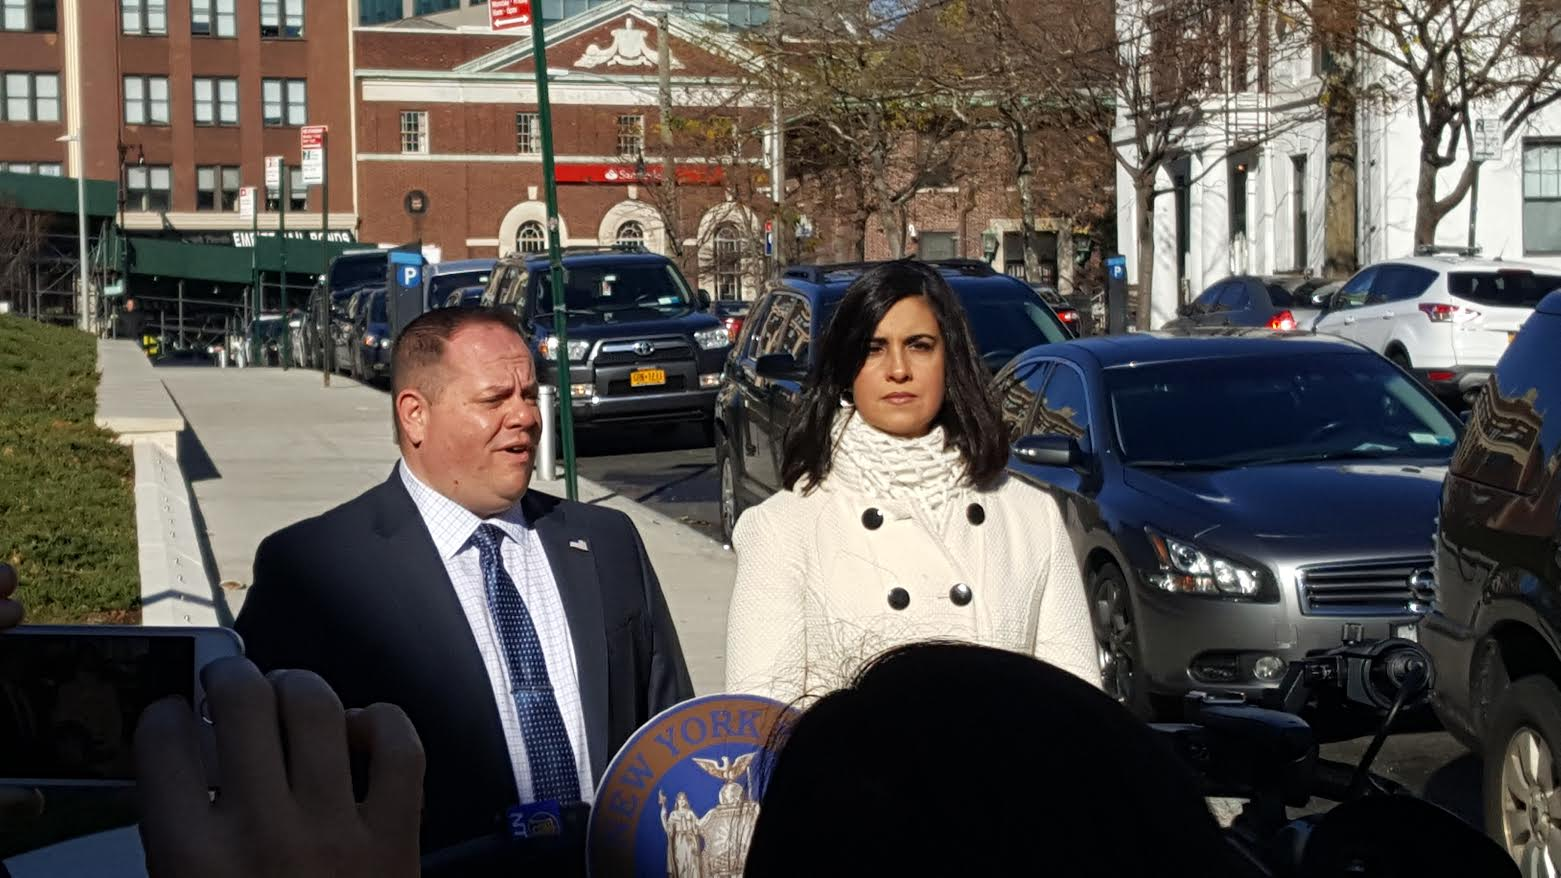 Malliotakis and Castorina